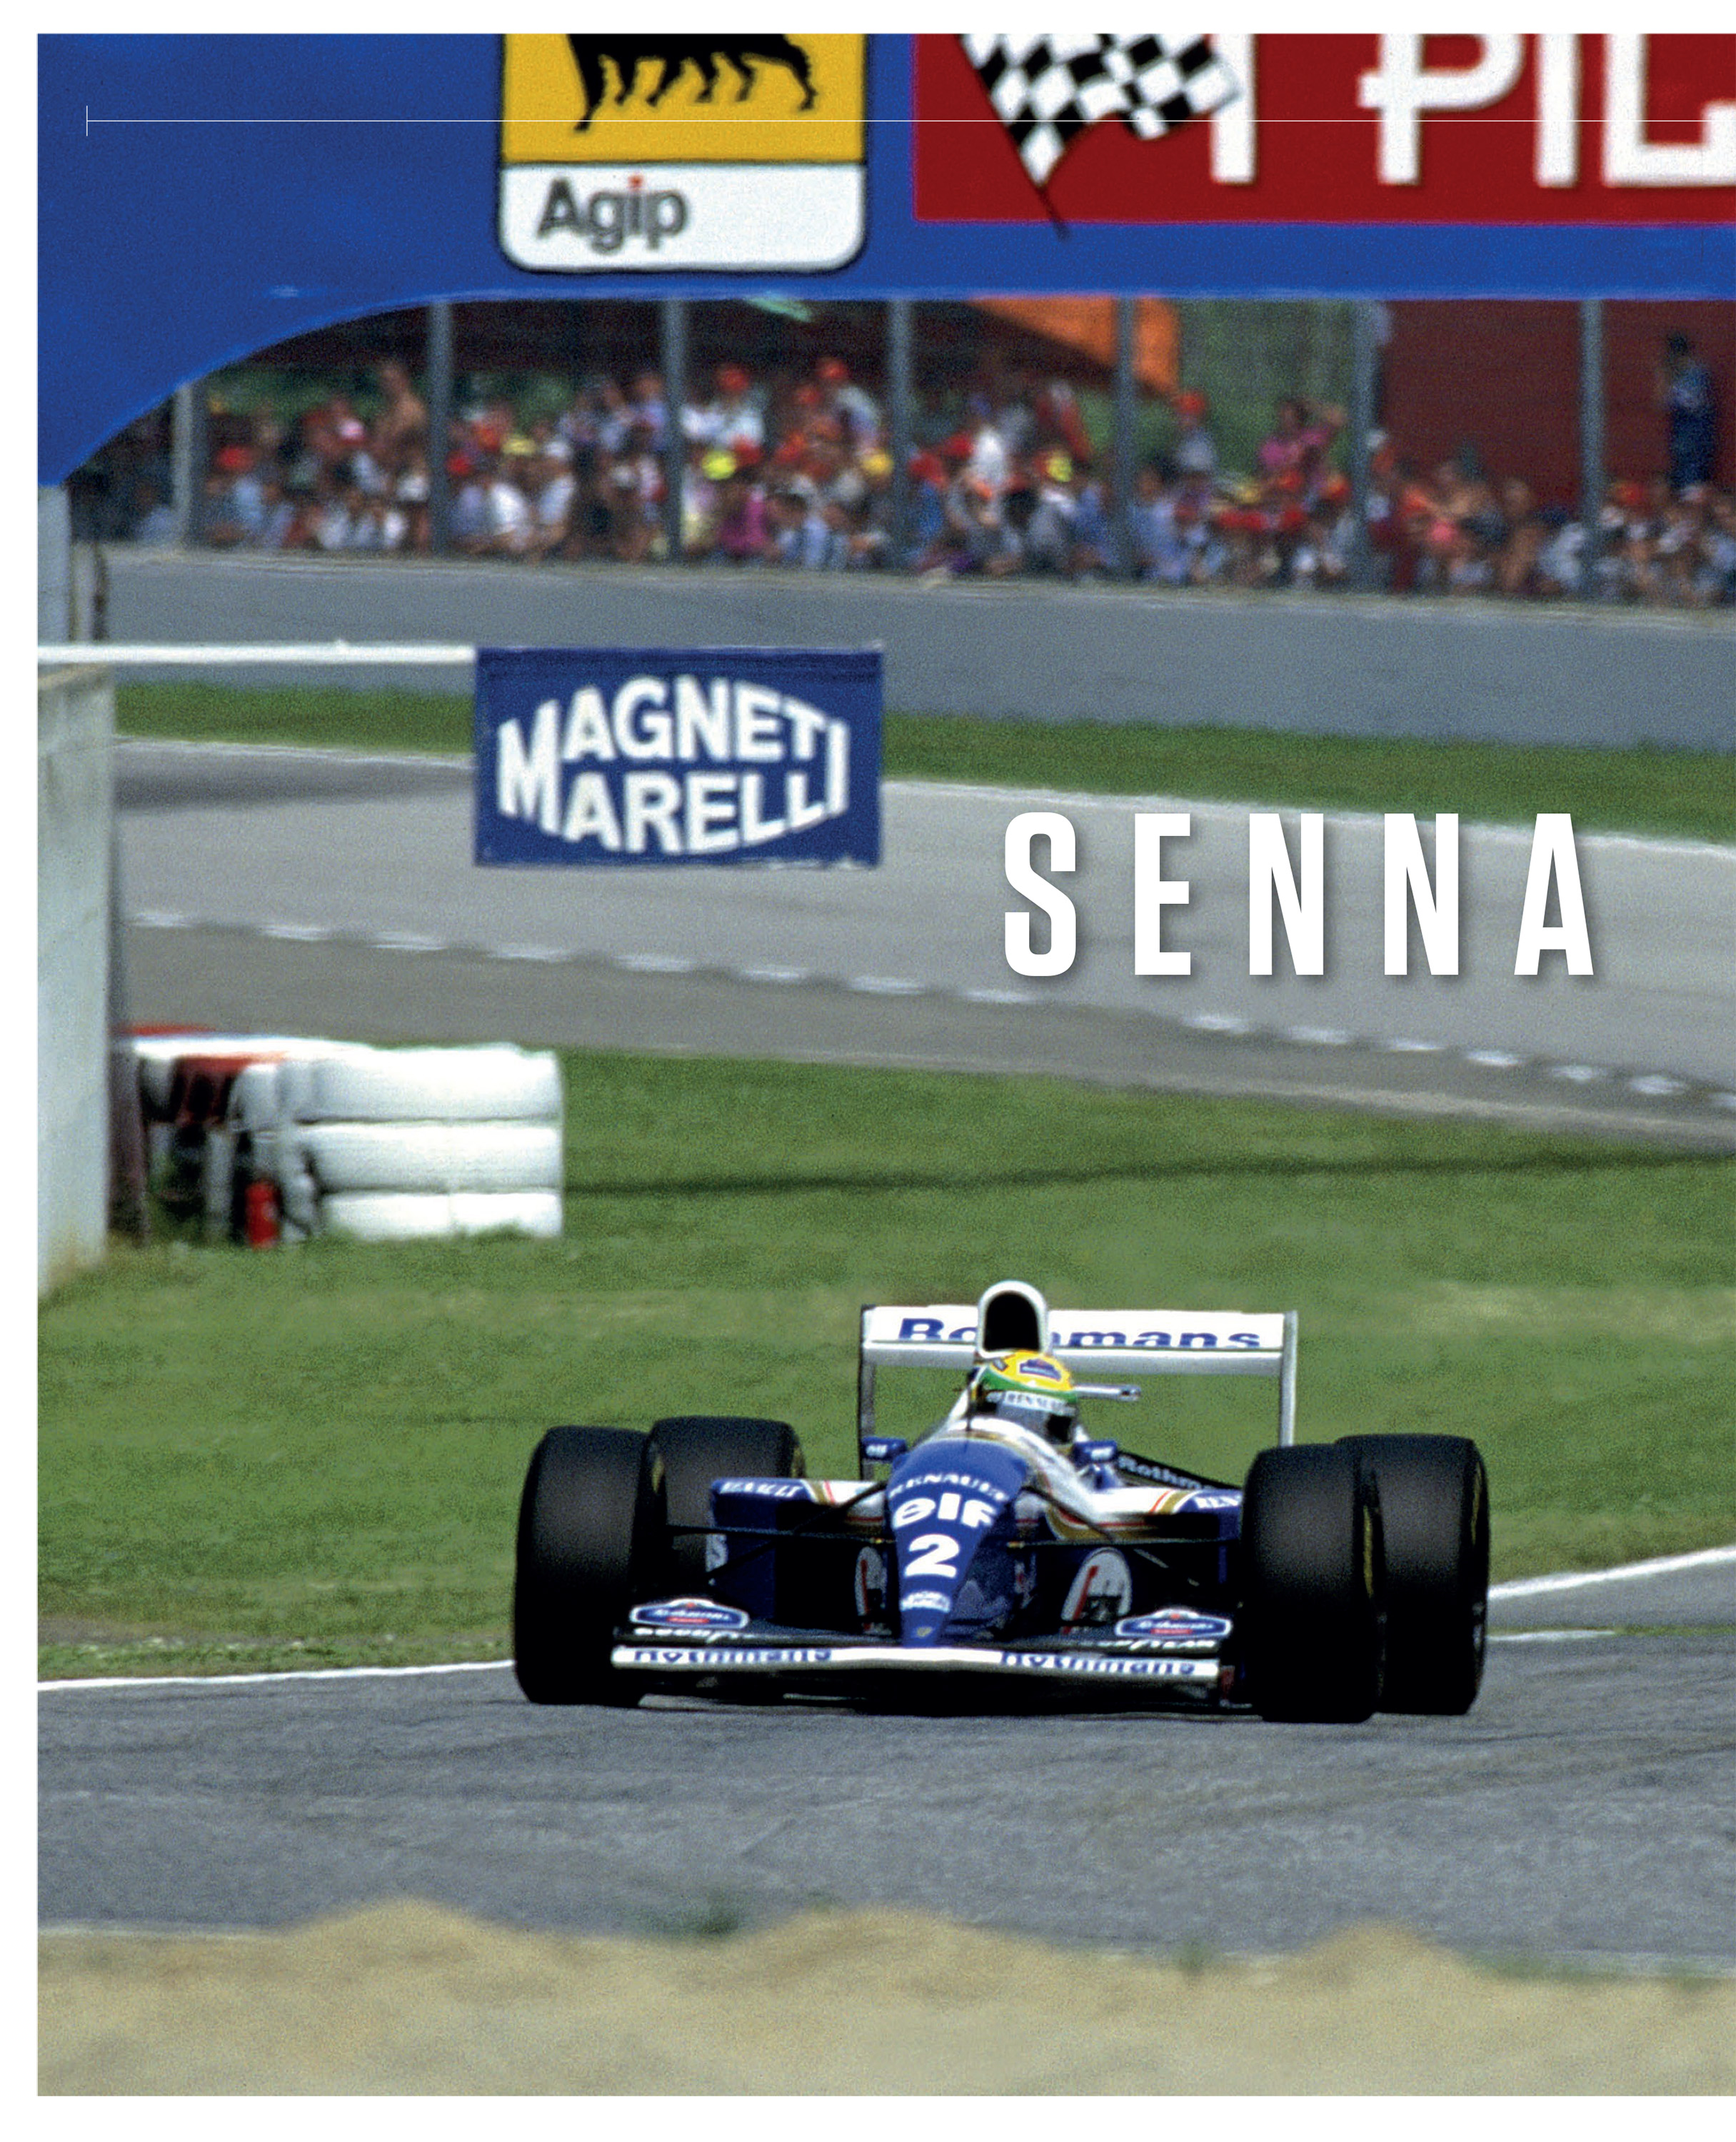 Senna vs Schumacher, a rivalry unfulfilled image